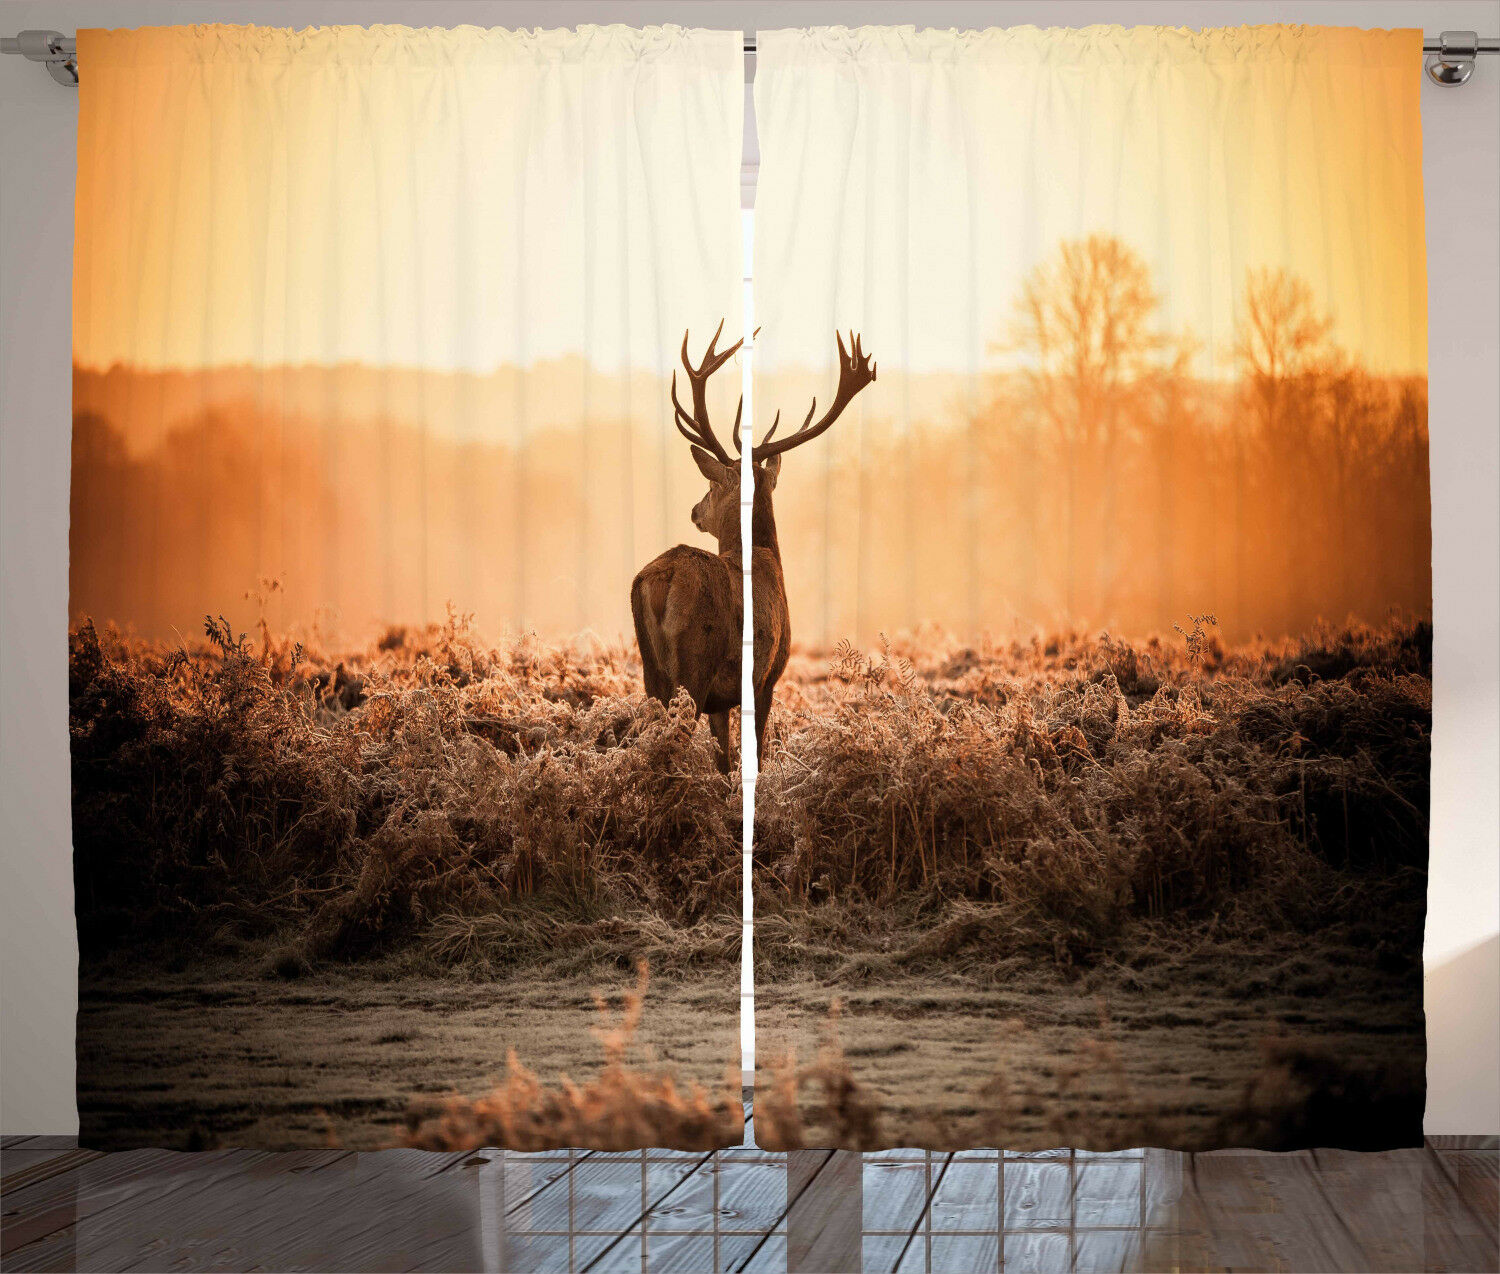 Hunting Curtains Deer Morning Sun Window Drapes 2 Panel Set 108x63 Inches